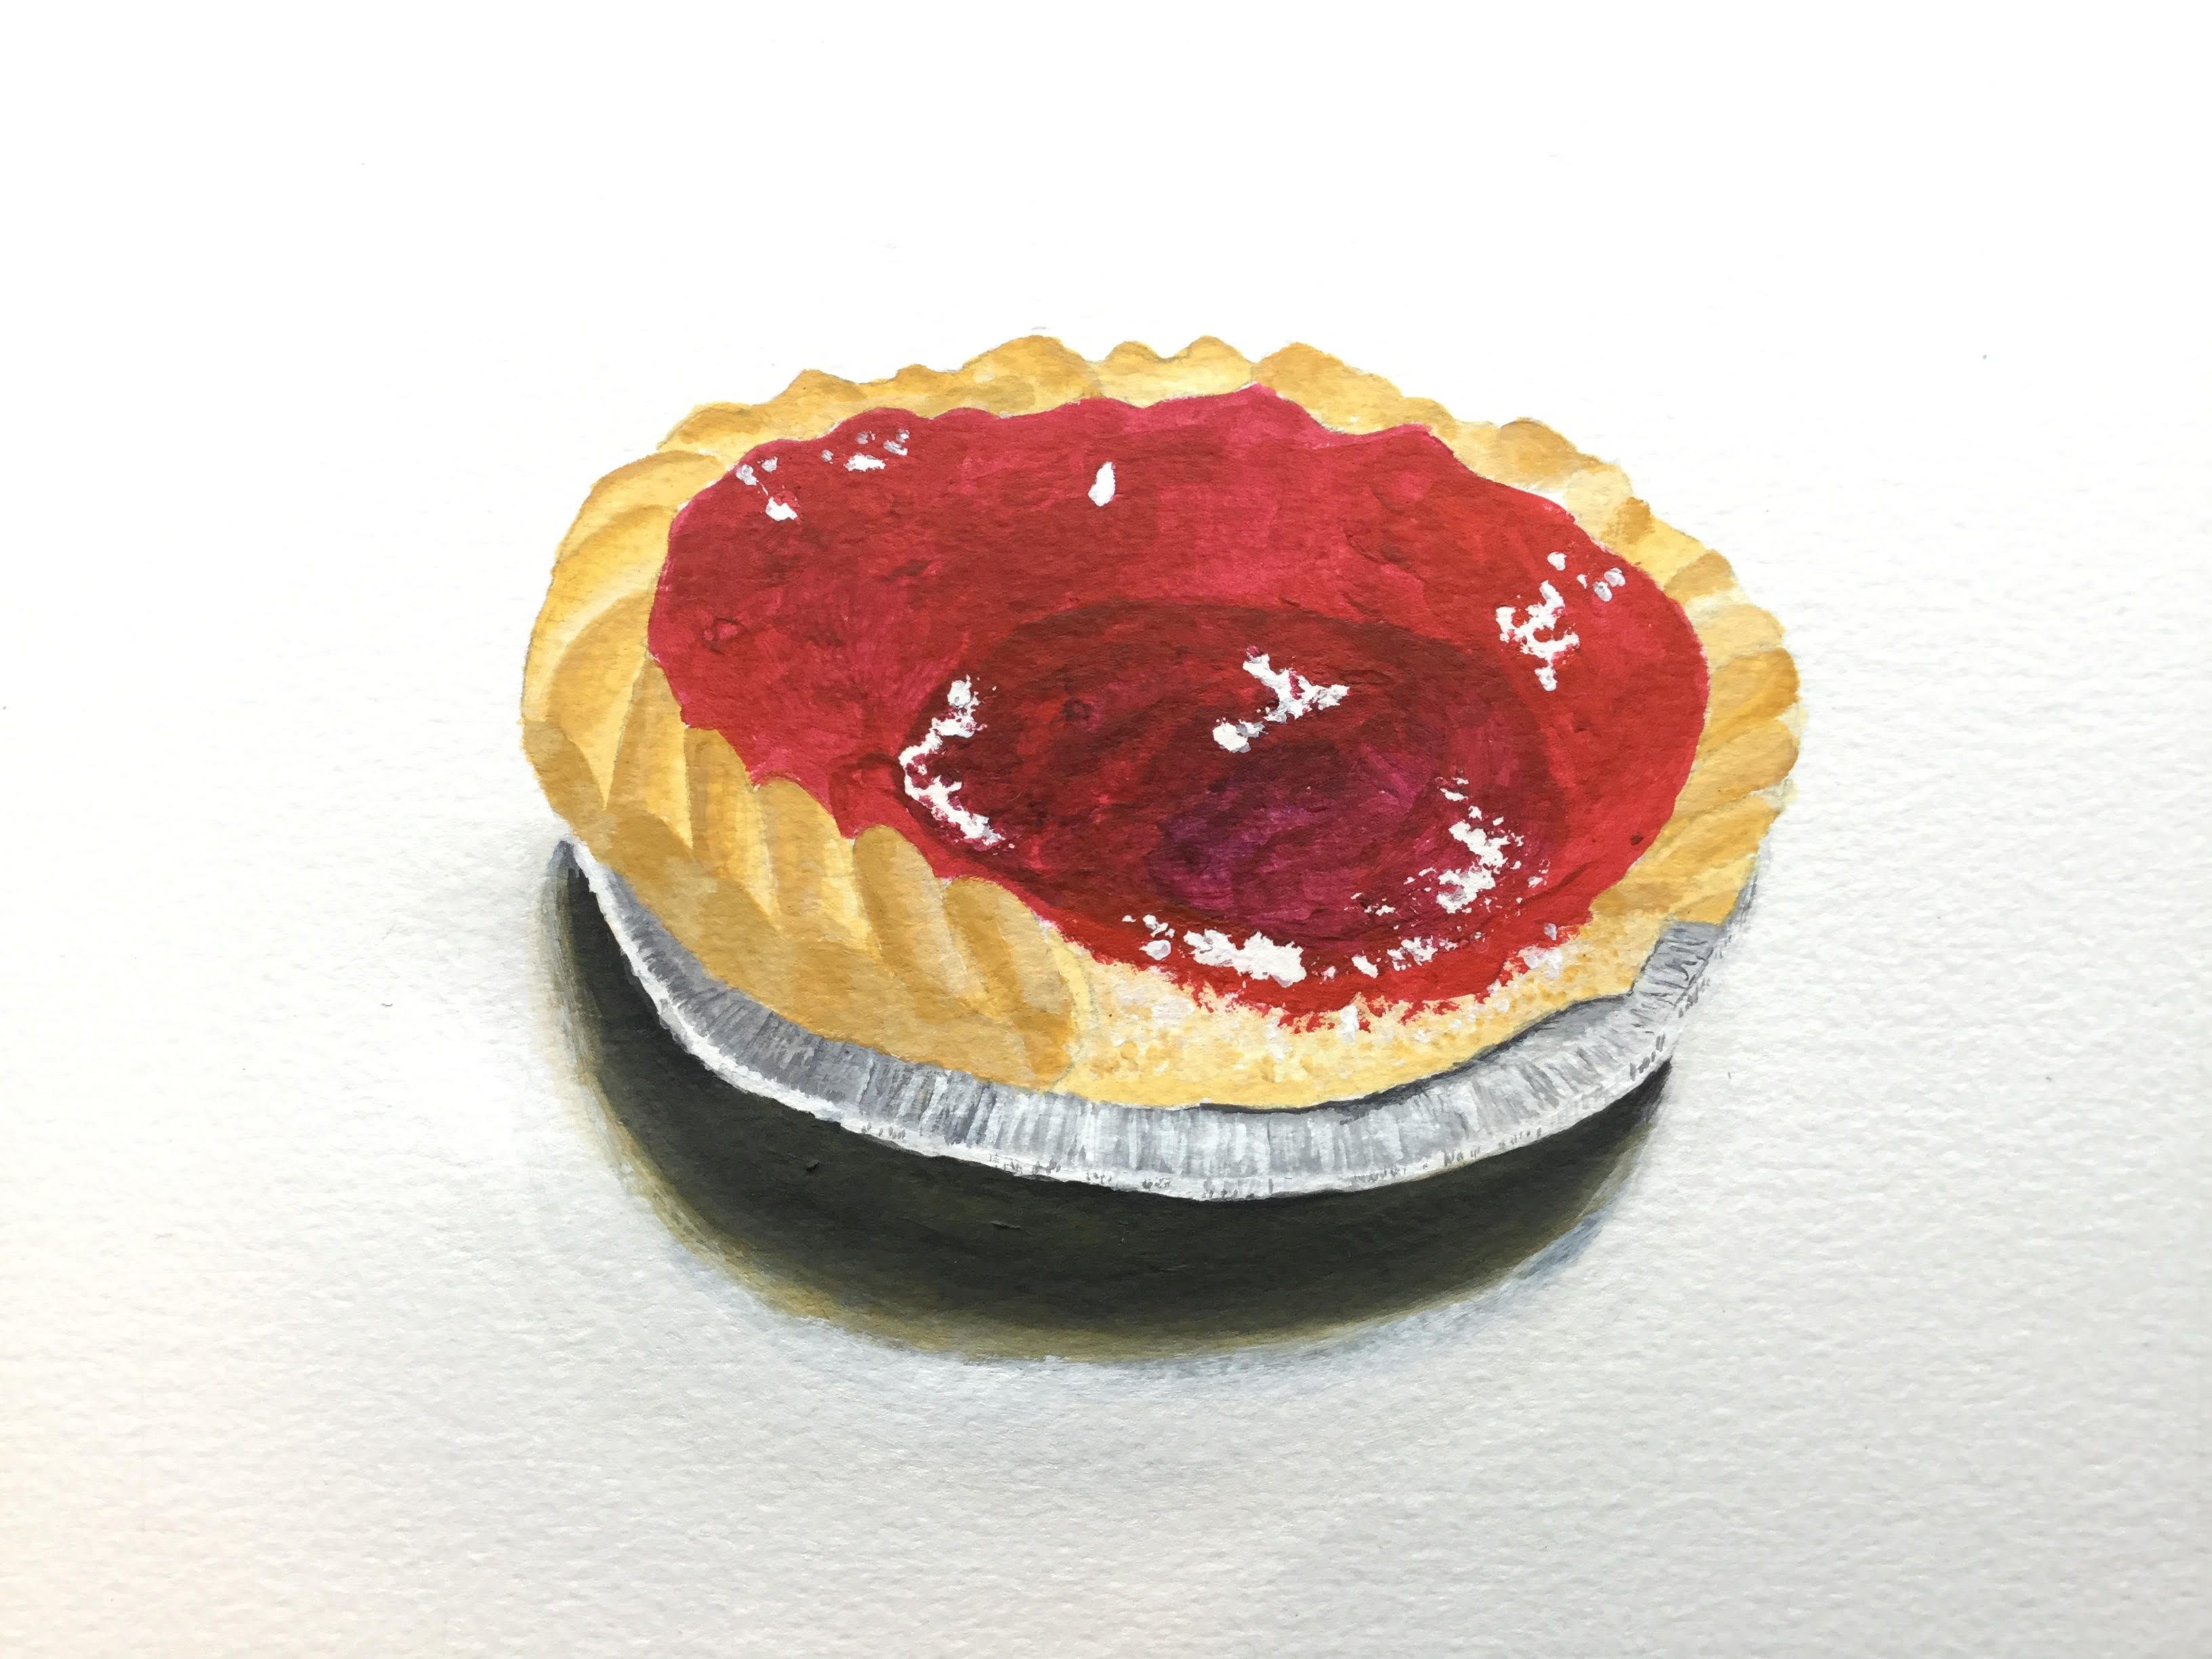 jam tart heather crick